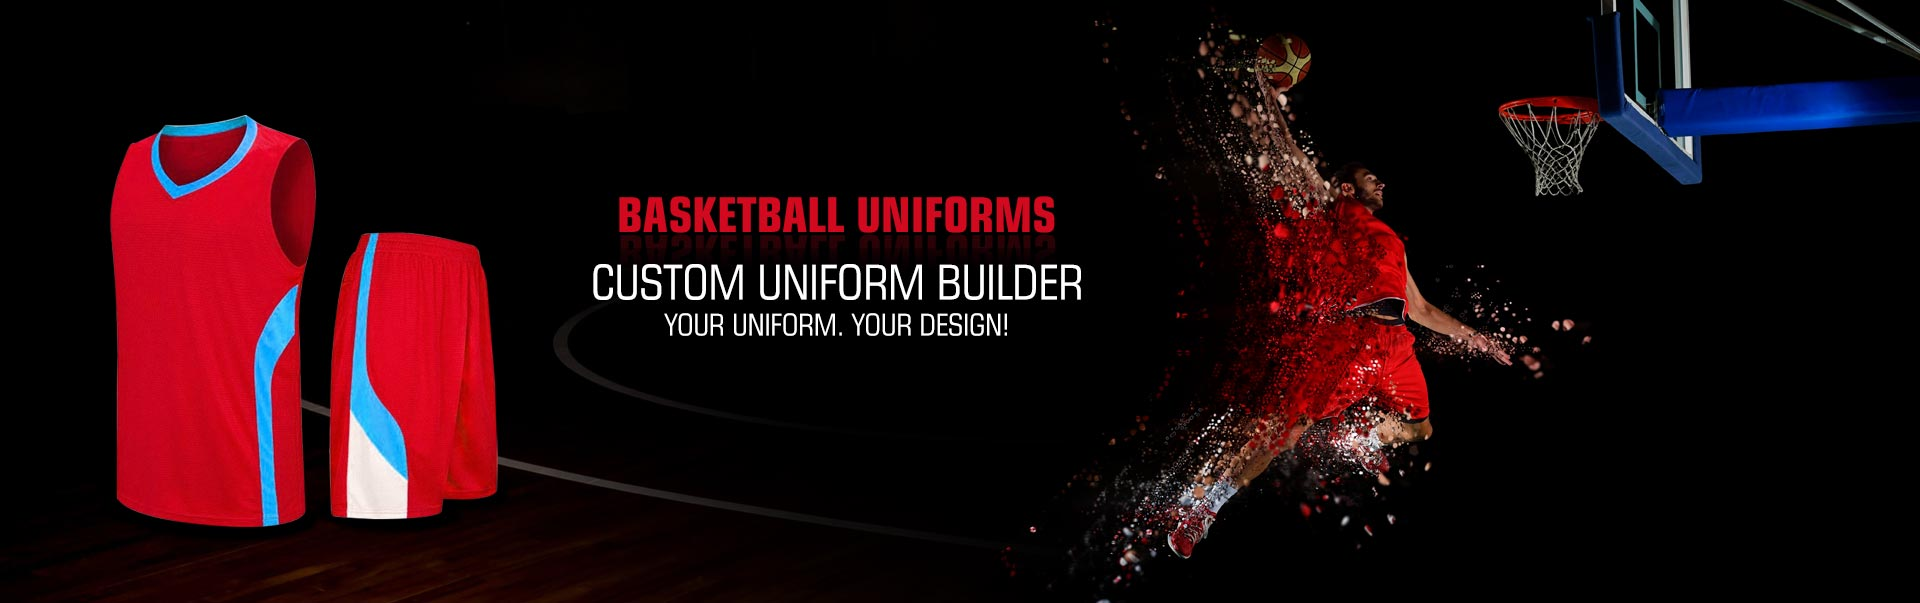 Basketball Uniforms Wholesaler, Suppliers in Mississippi Mills